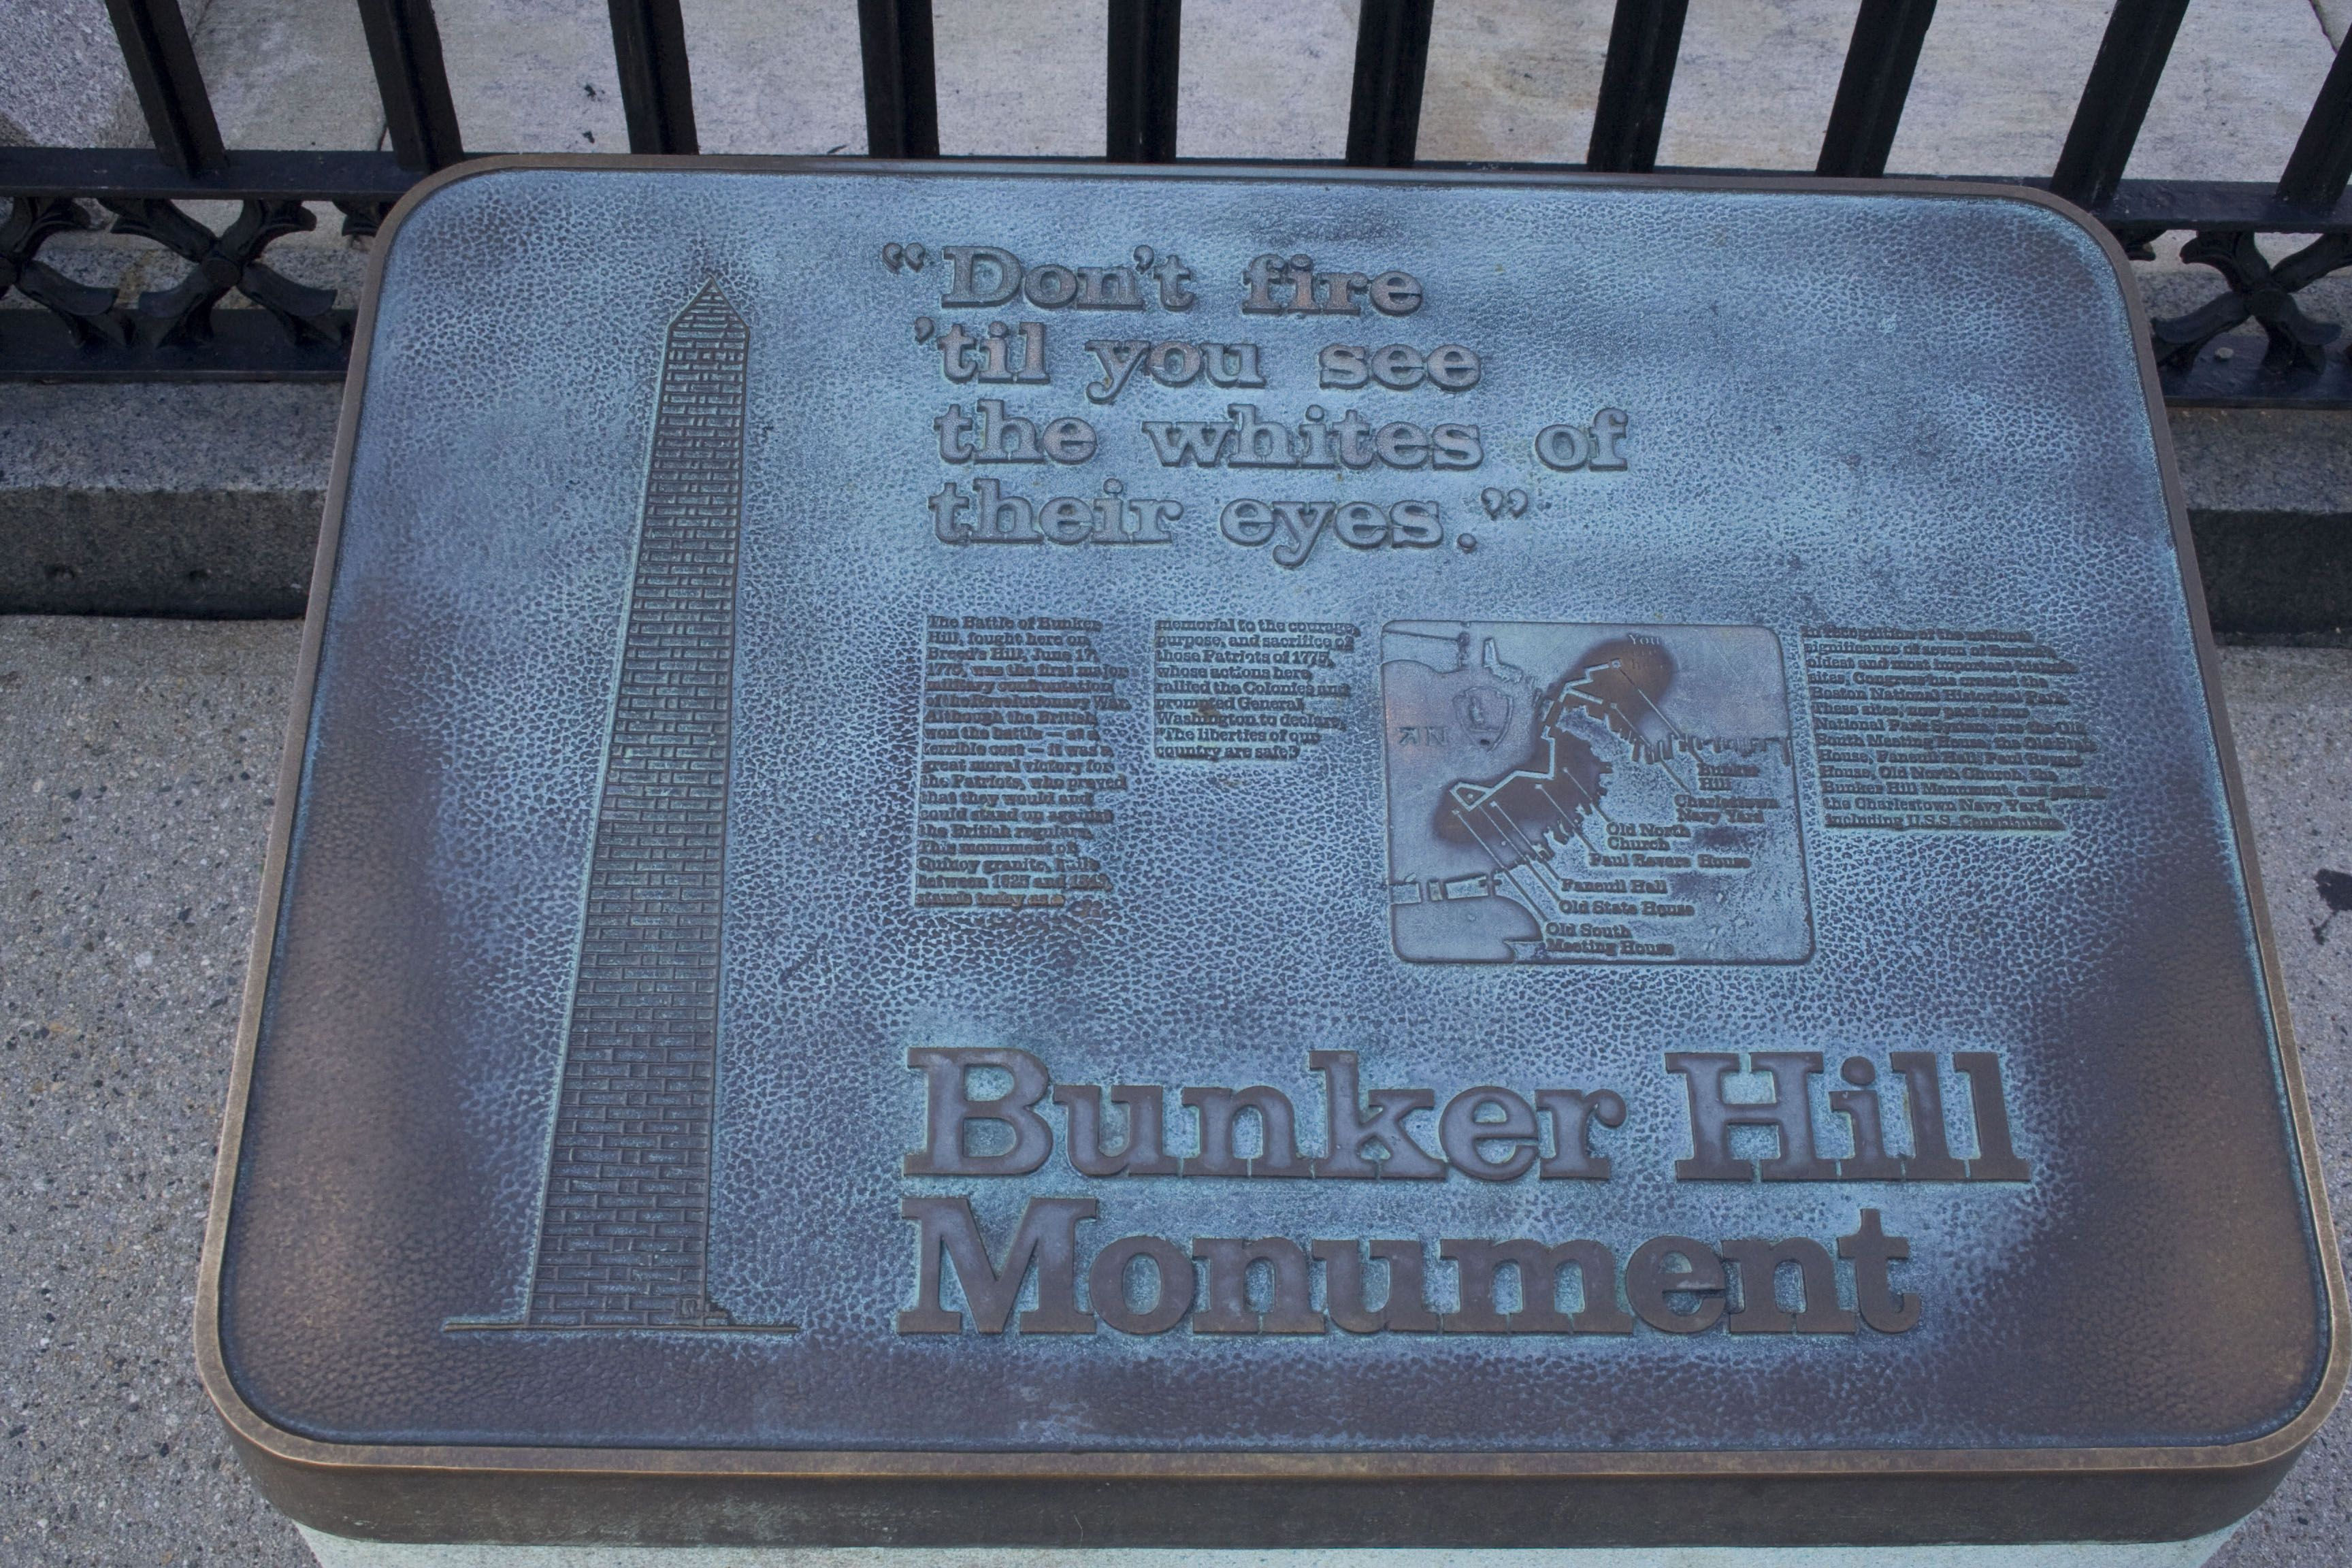 Marker at monument detailing some details of the battle of Bunker Hill.